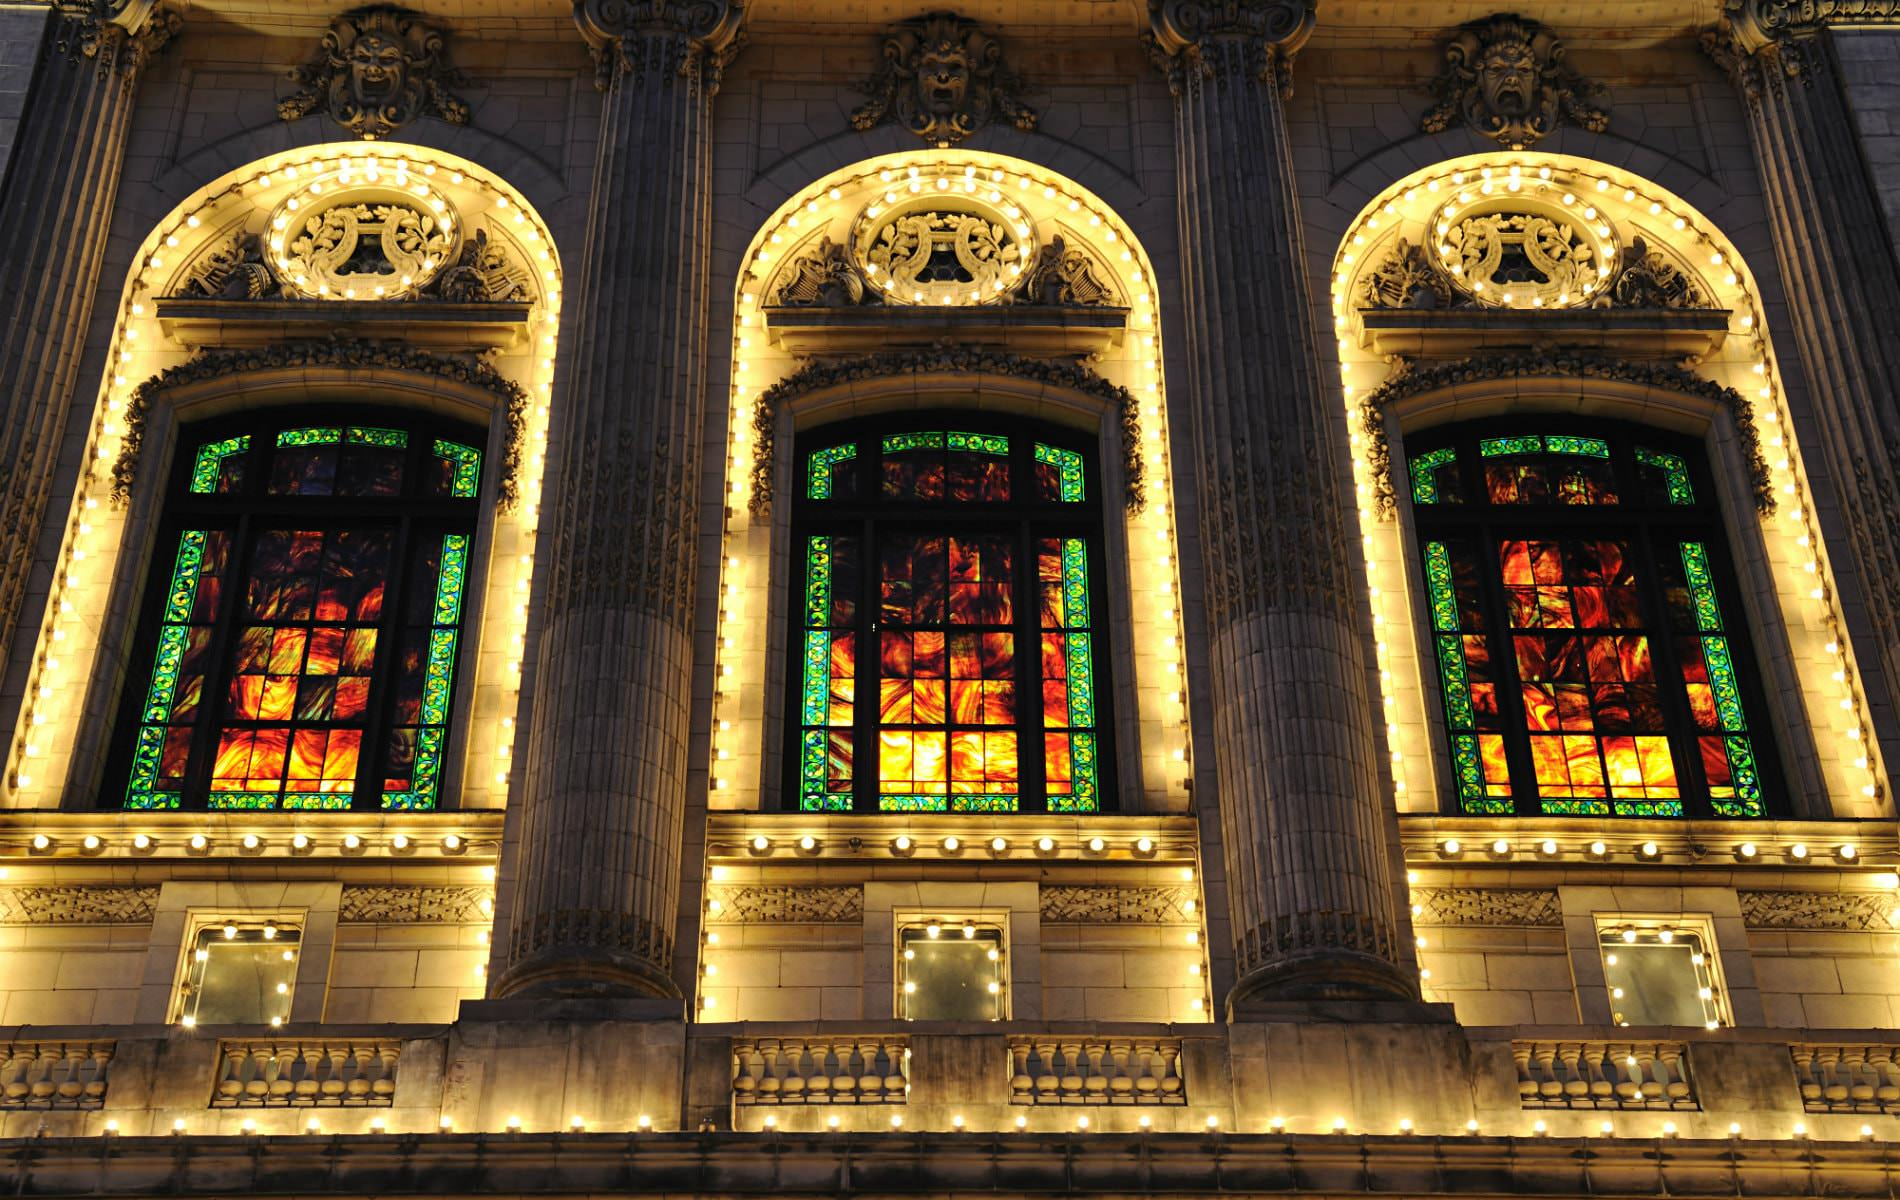 Ornately carved stone building lit up at night with tall arched windows, Grecian columns, stained glass